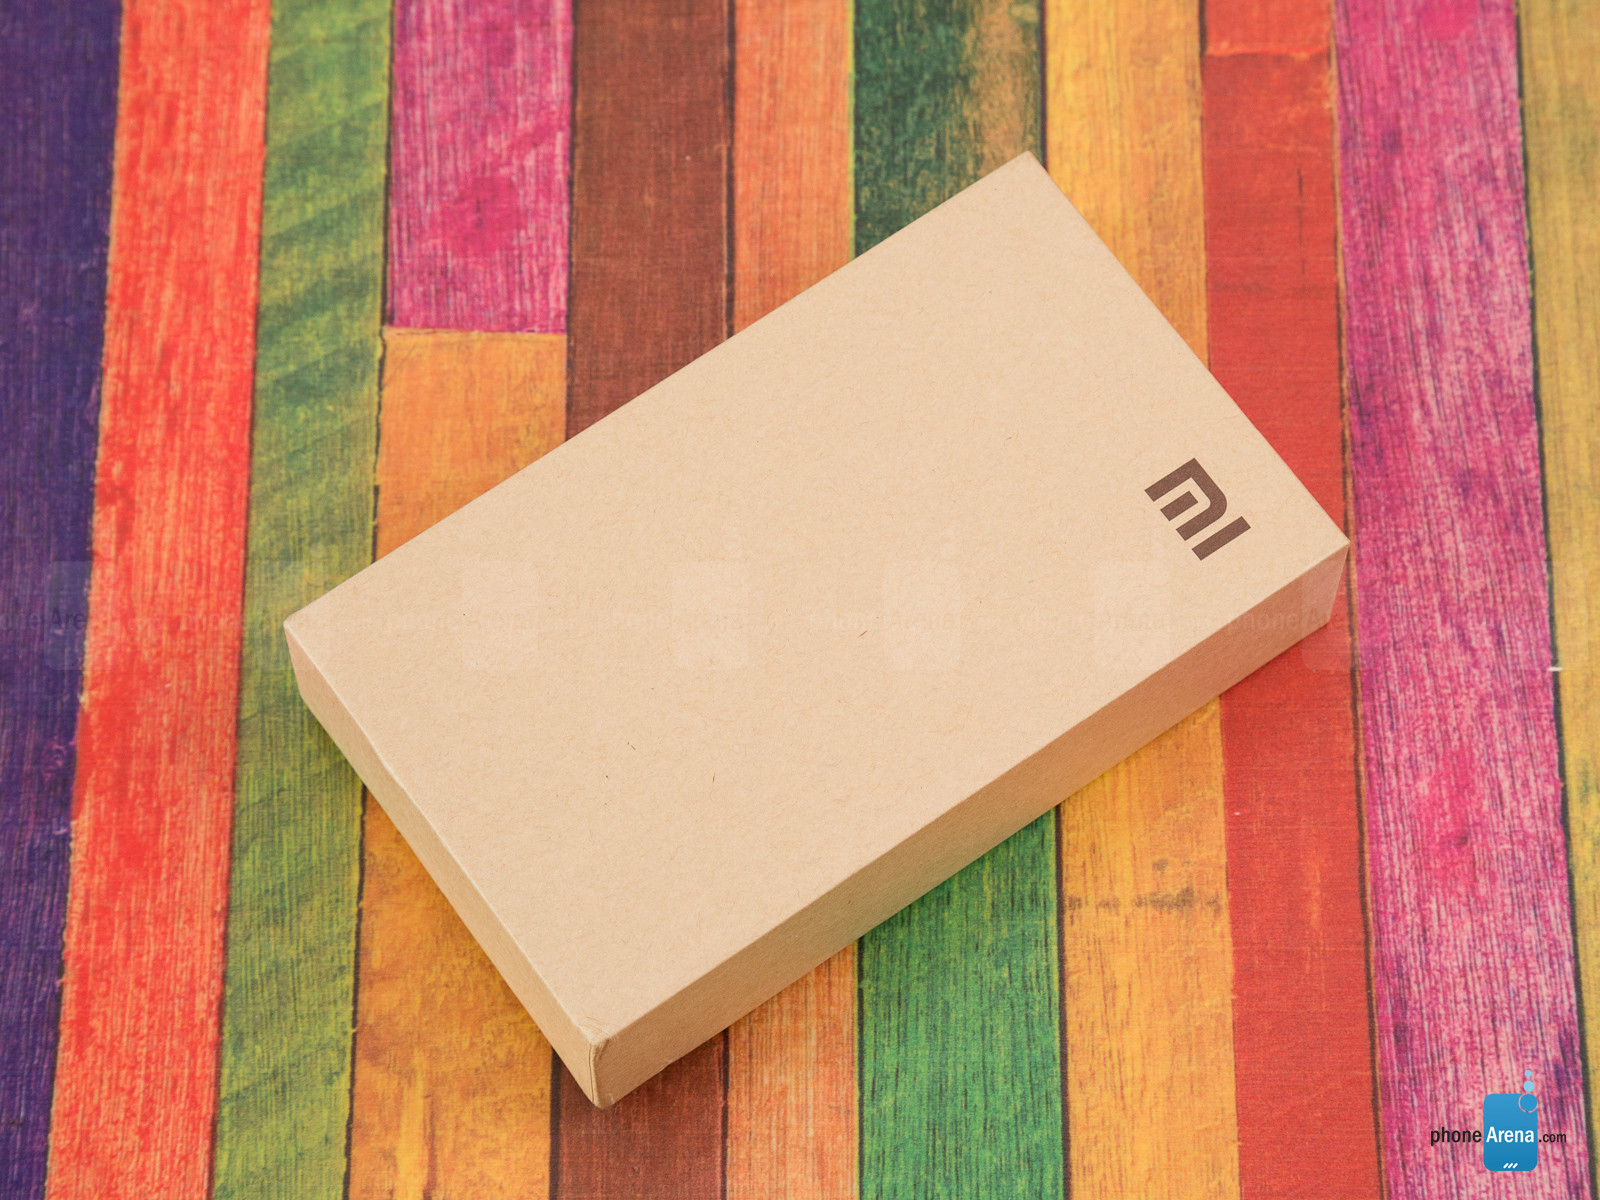 Xiaomi redmi Note 2 Box